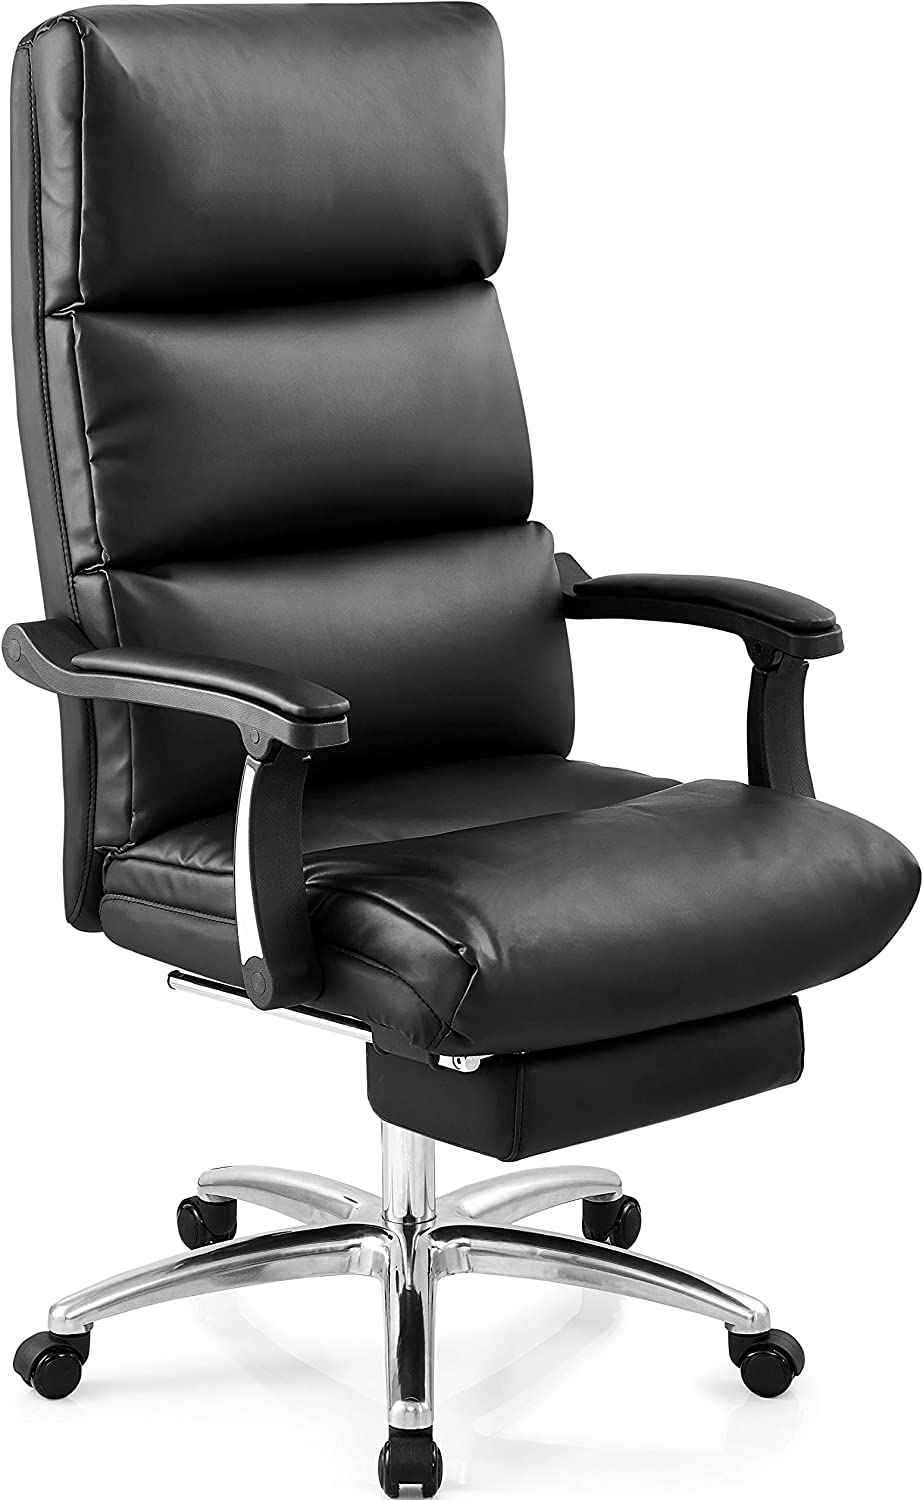 Ticova Executive Office Chair – High Back Leather Office Chair with Footrest and Thick Padding – Reclining Computer Chair with Textured Leather and Ergonomic Segmented Back, Black